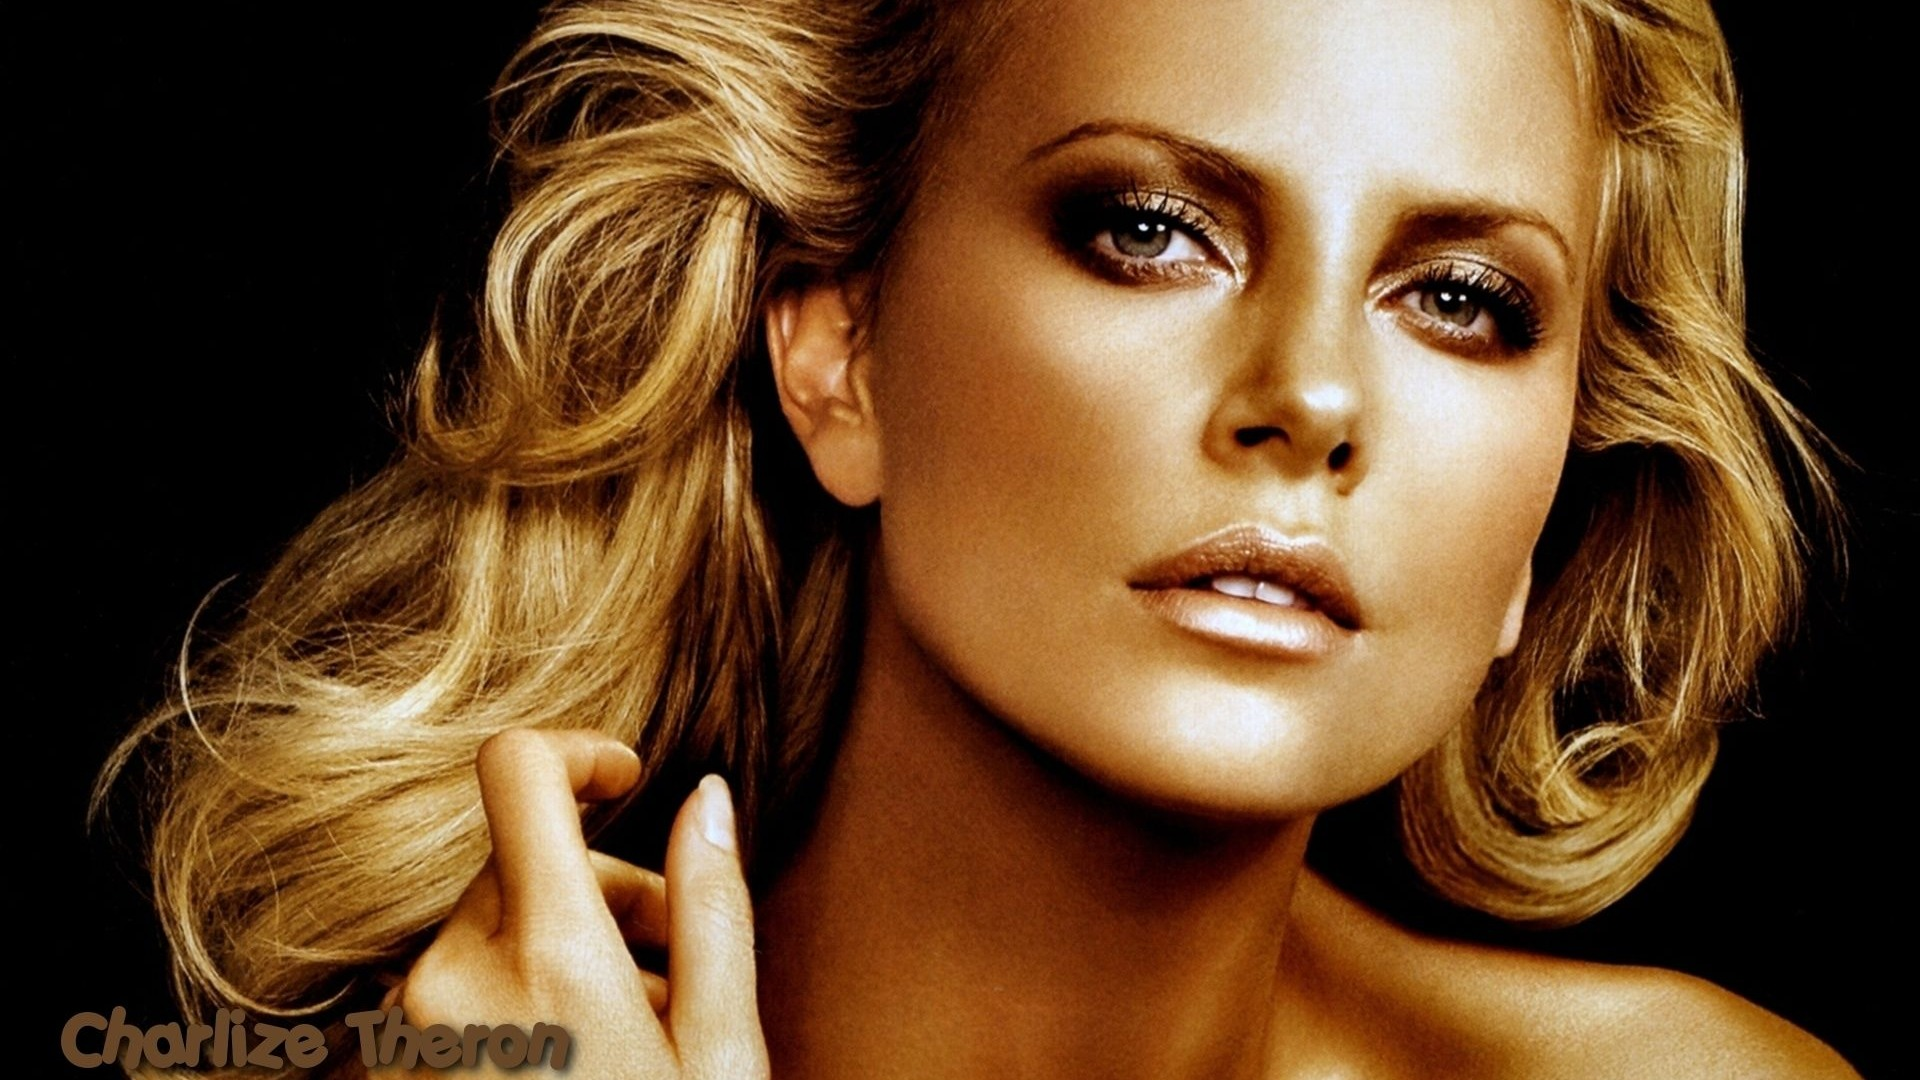 Charlize Theron #072 - 1920x1080 Wallpapers Pictures Photos Images